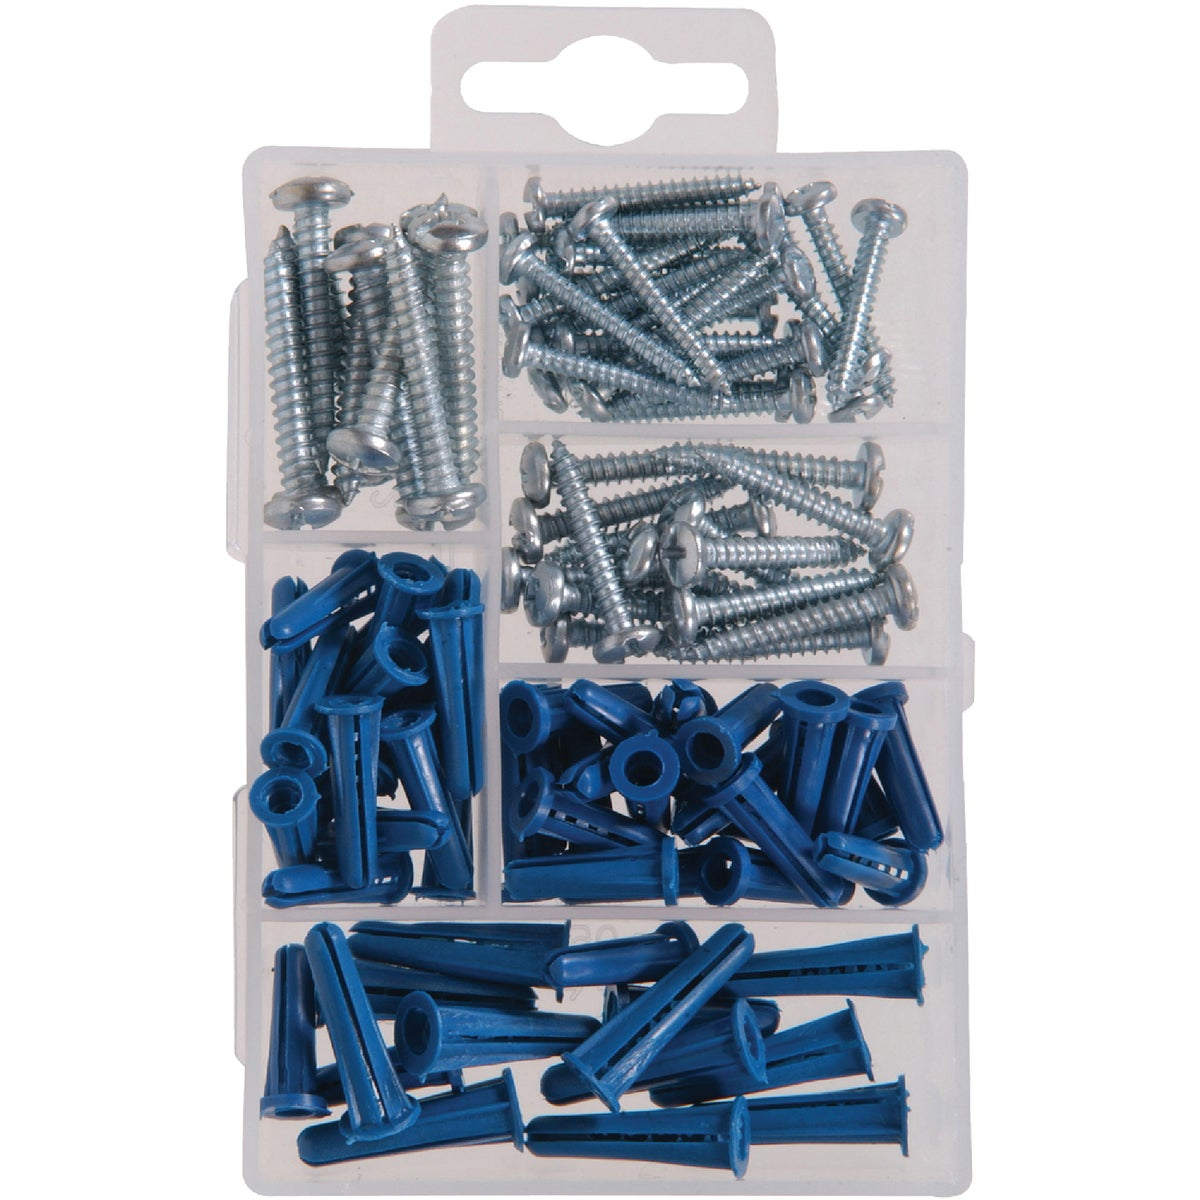 KIT SCREWS AND ANCHORS - 130201 by Hillman Fastener